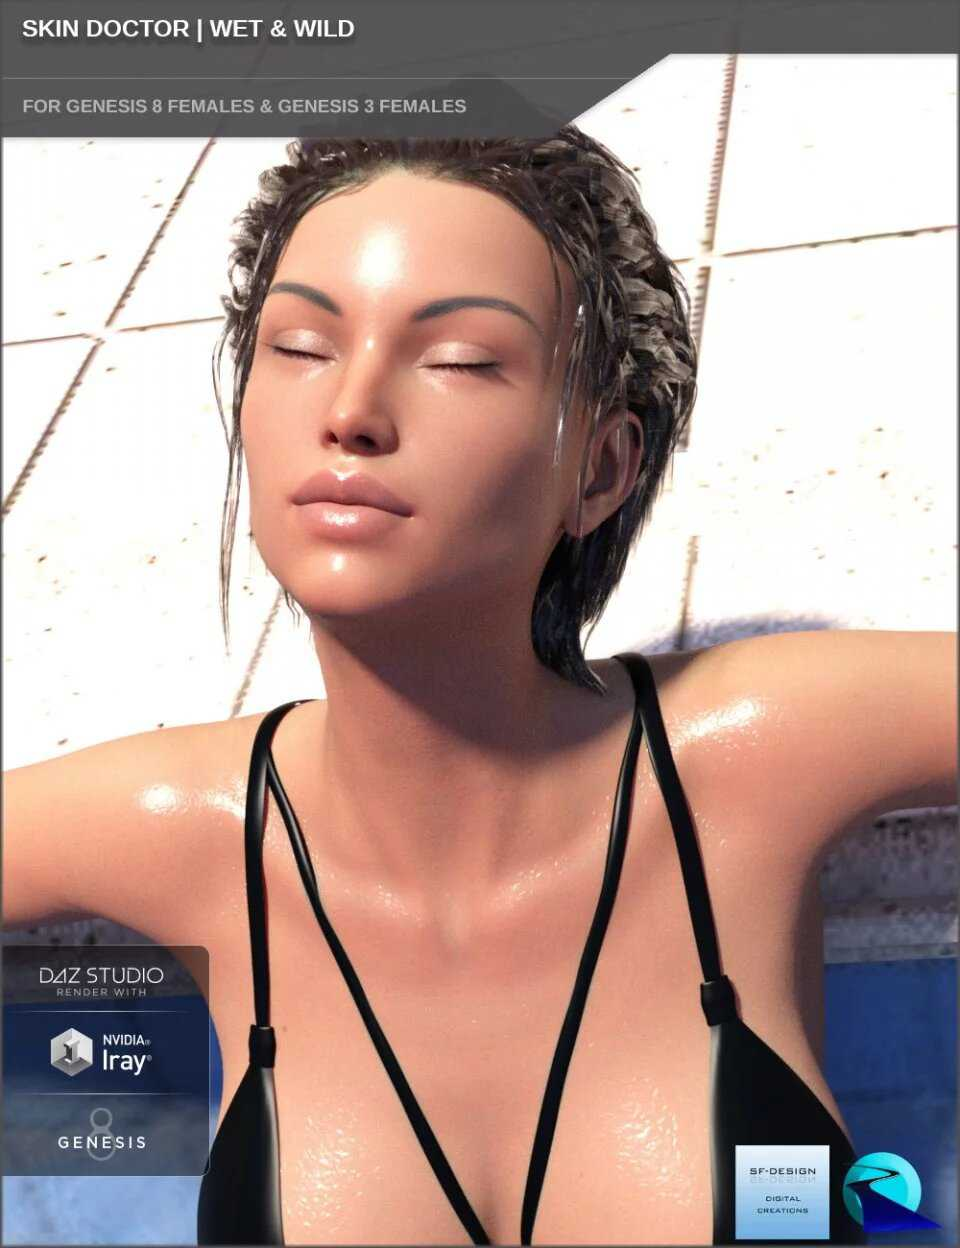 Skin Doctor – Wet & Wild for Genesis 8 and 3 Female(s)